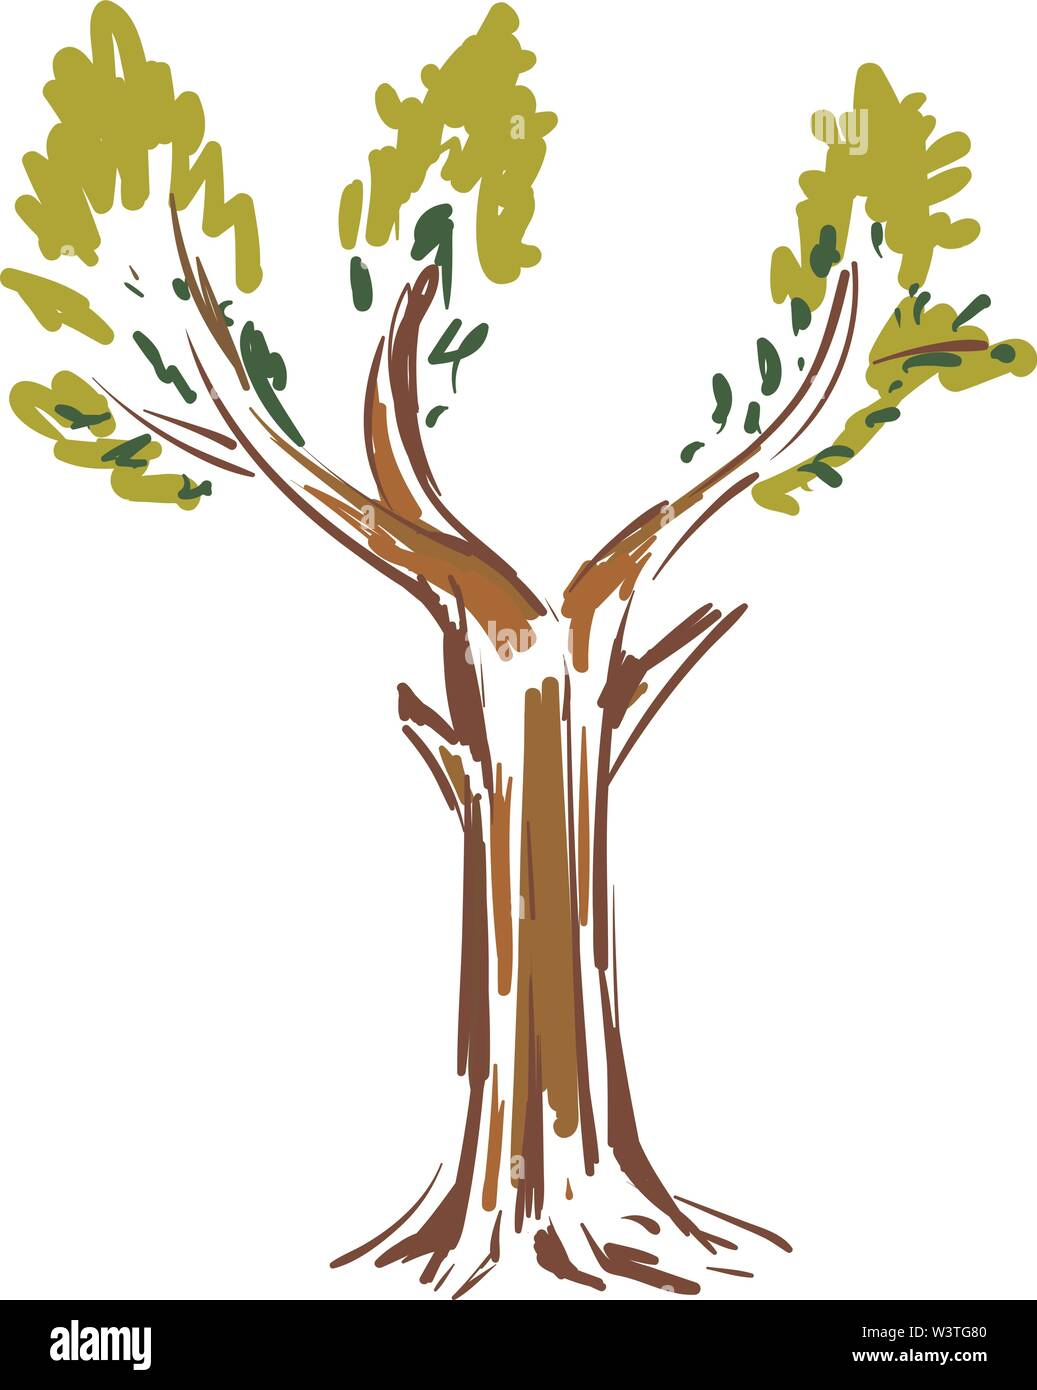 A Colorful Sketch Of A Big Tree With Green Leaves Vector Color Drawing Or Illustration Stock Vector Image Art Alamy